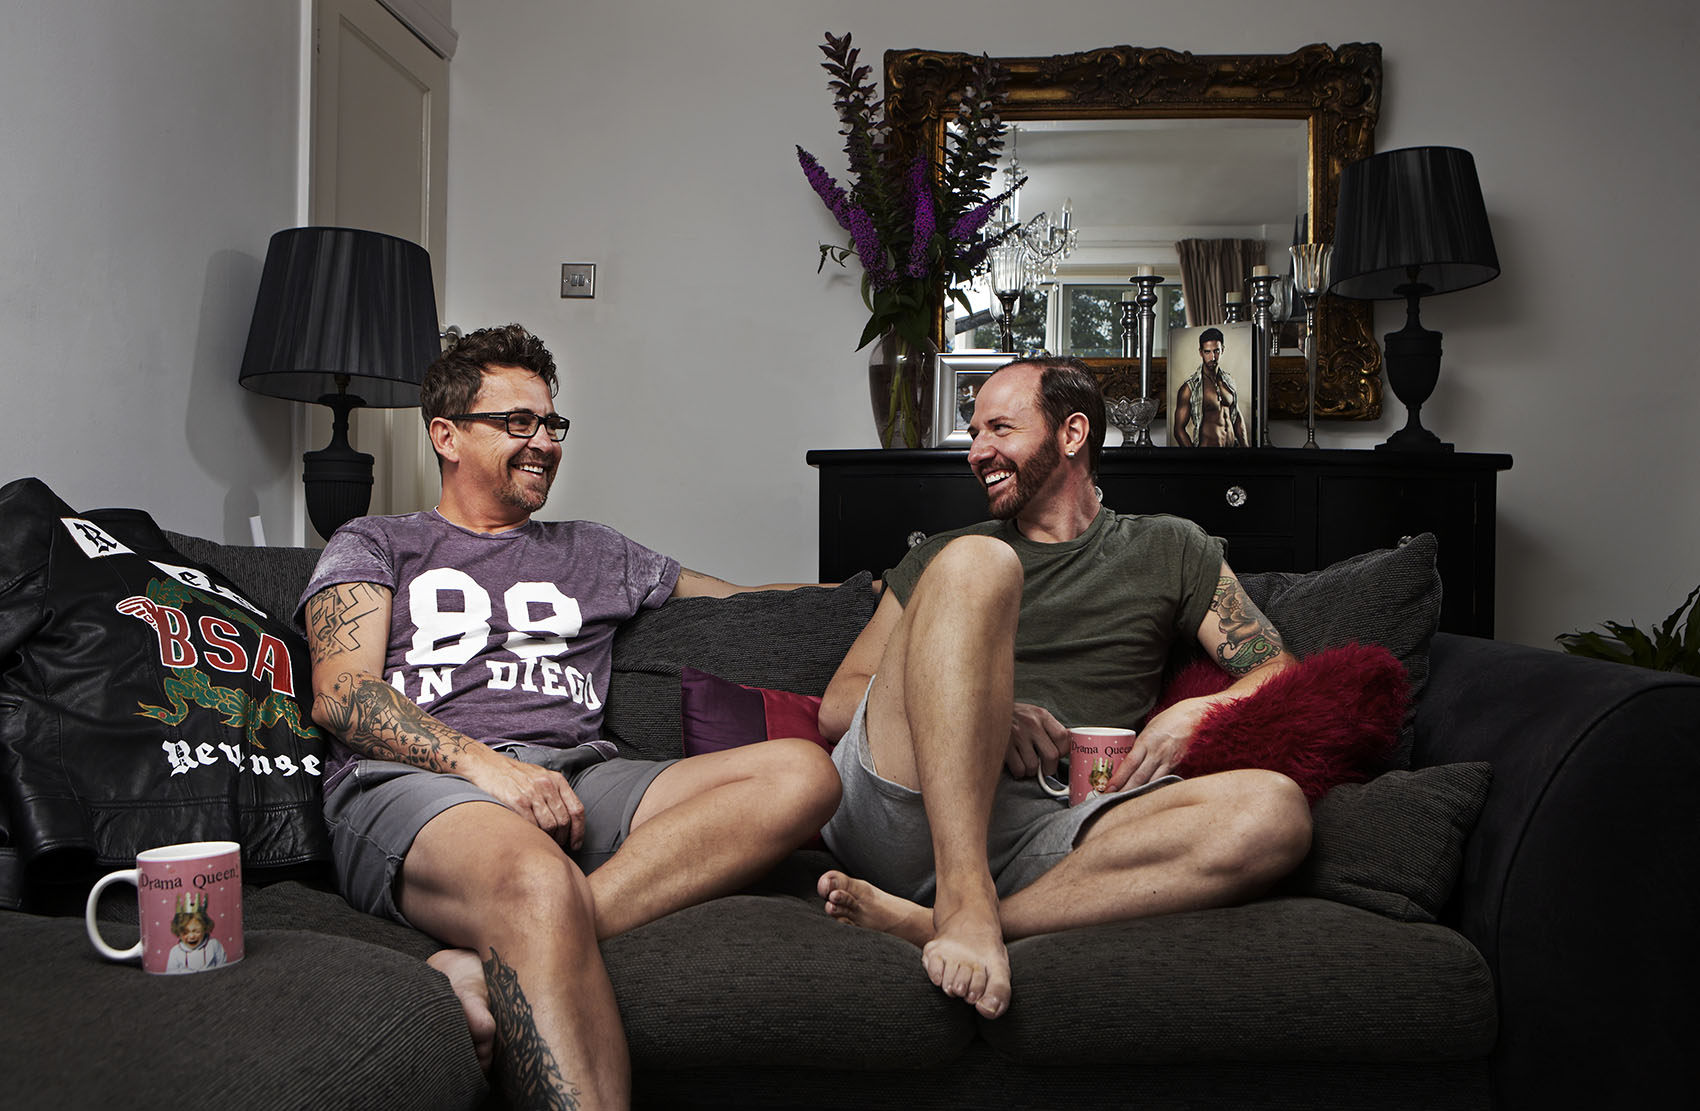 Guess how much Gogglebox stars get paid!